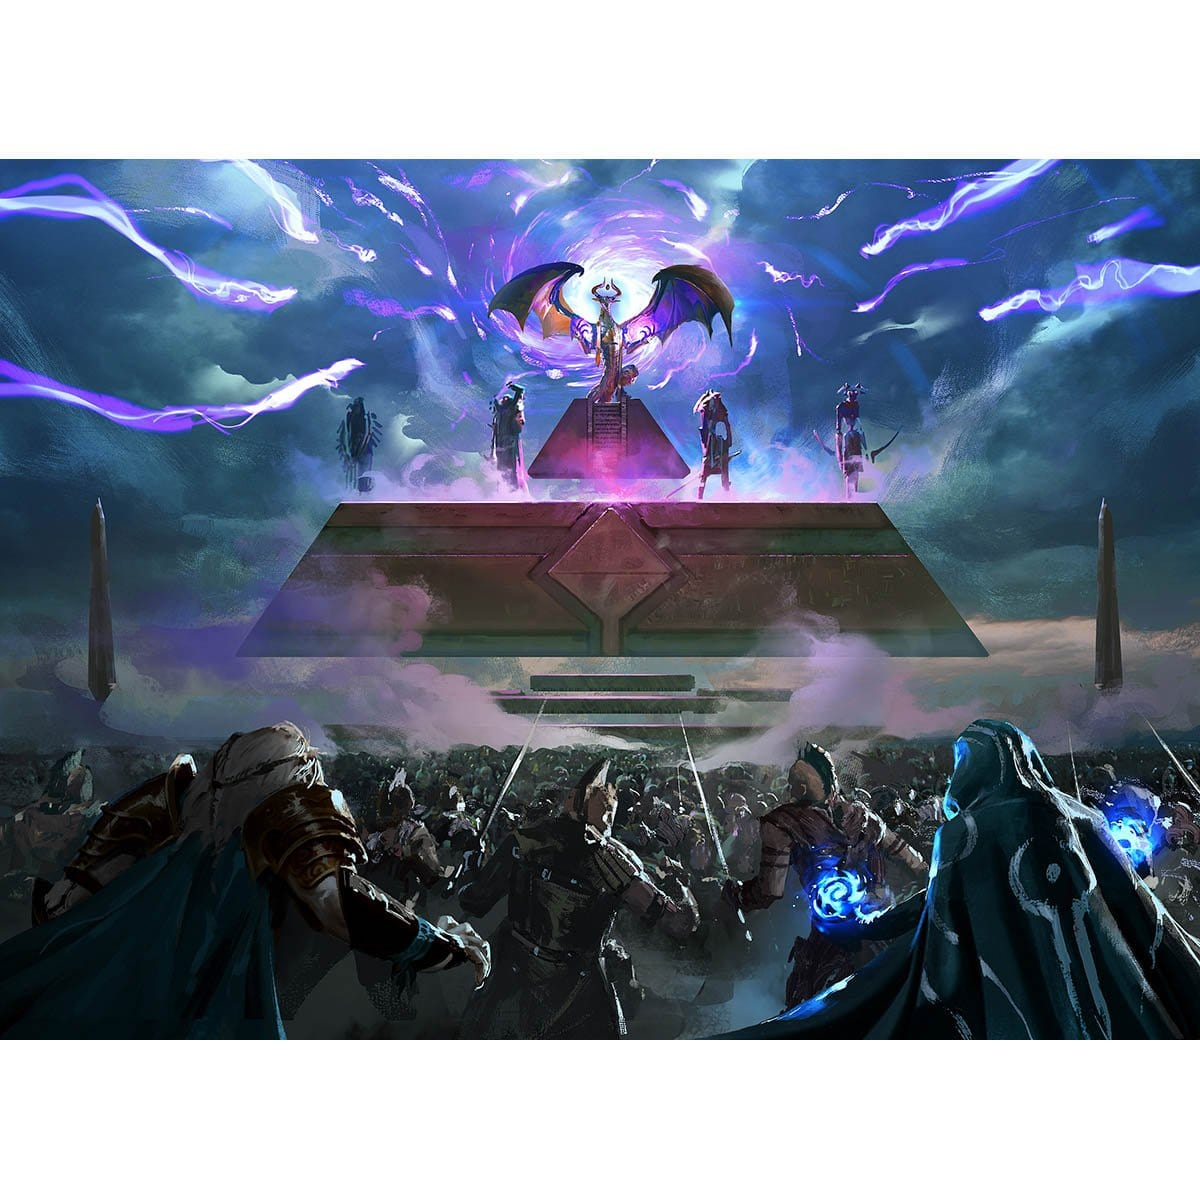 Storm the Citadel Print - Print - Original Magic Art - Accessories for Magic the Gathering and other card games